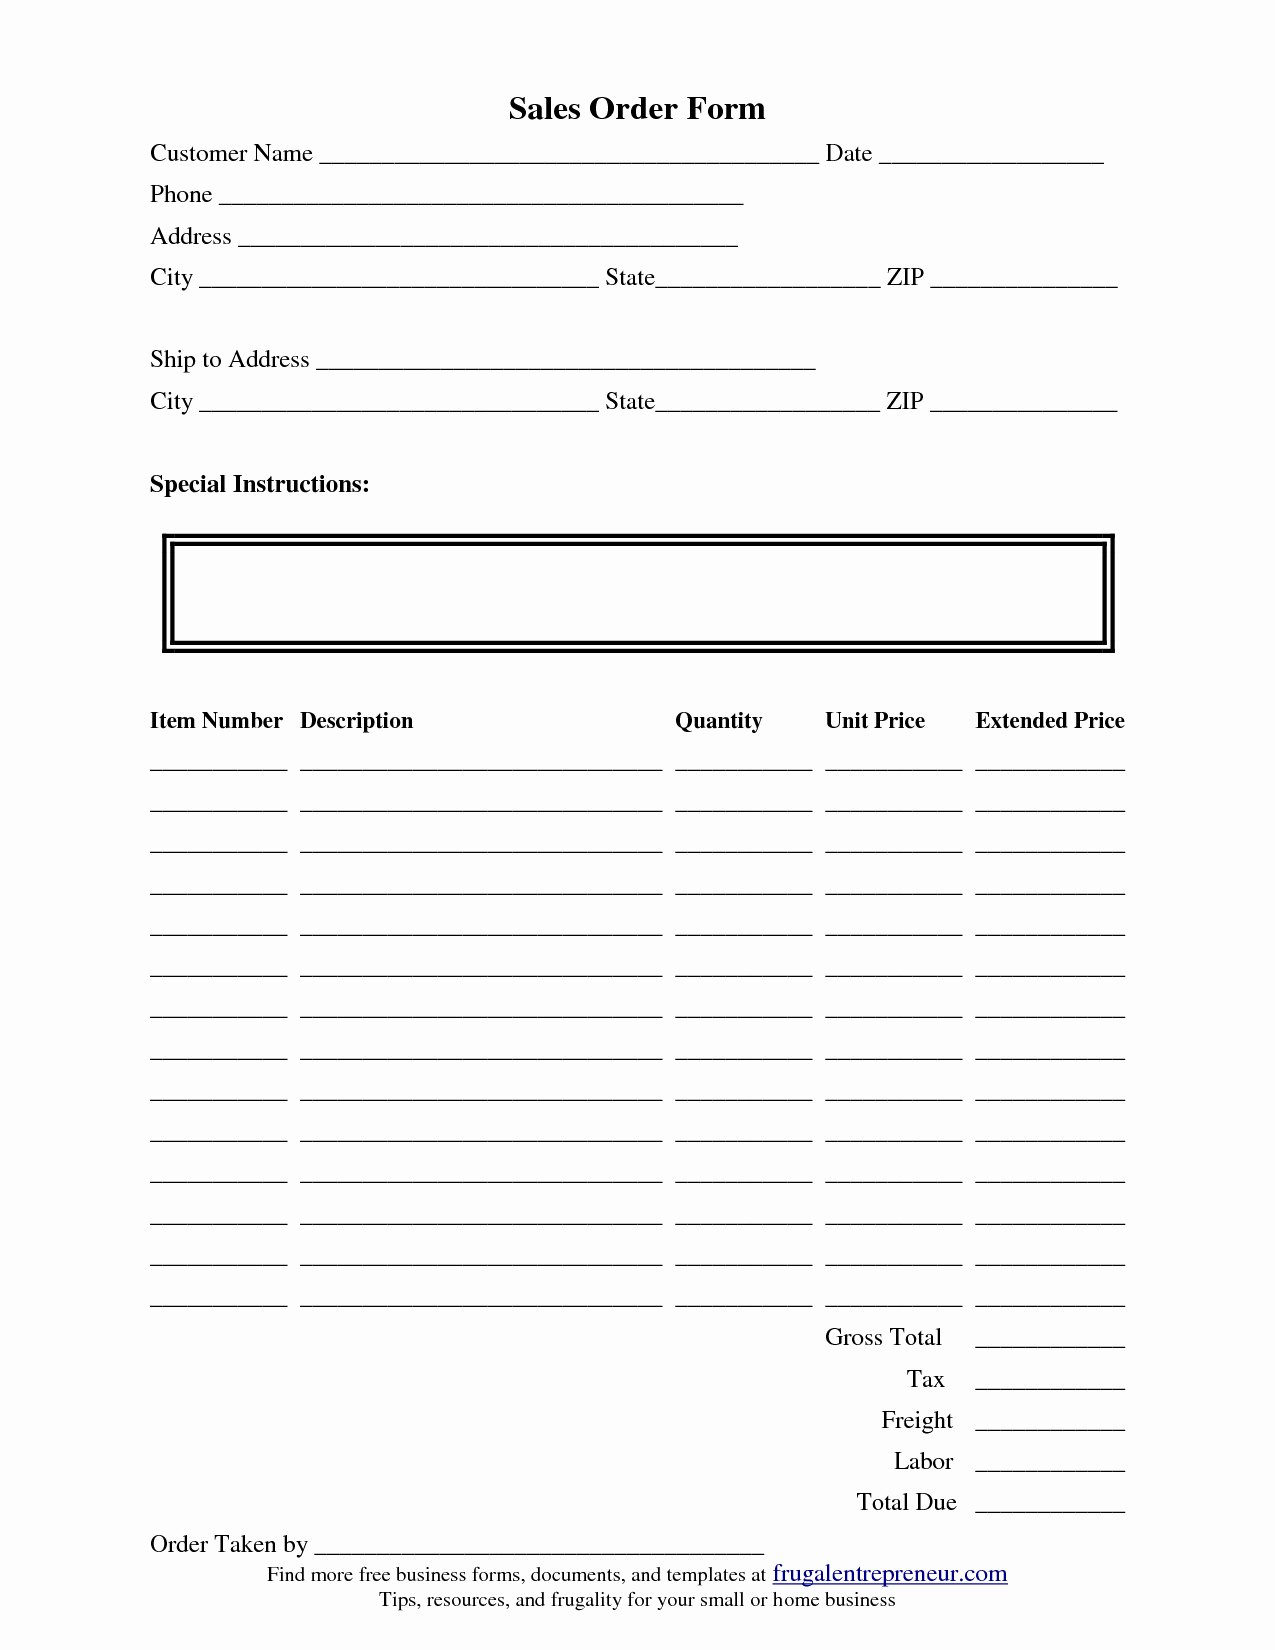 Sales order form Templates Free Lovely order form Template